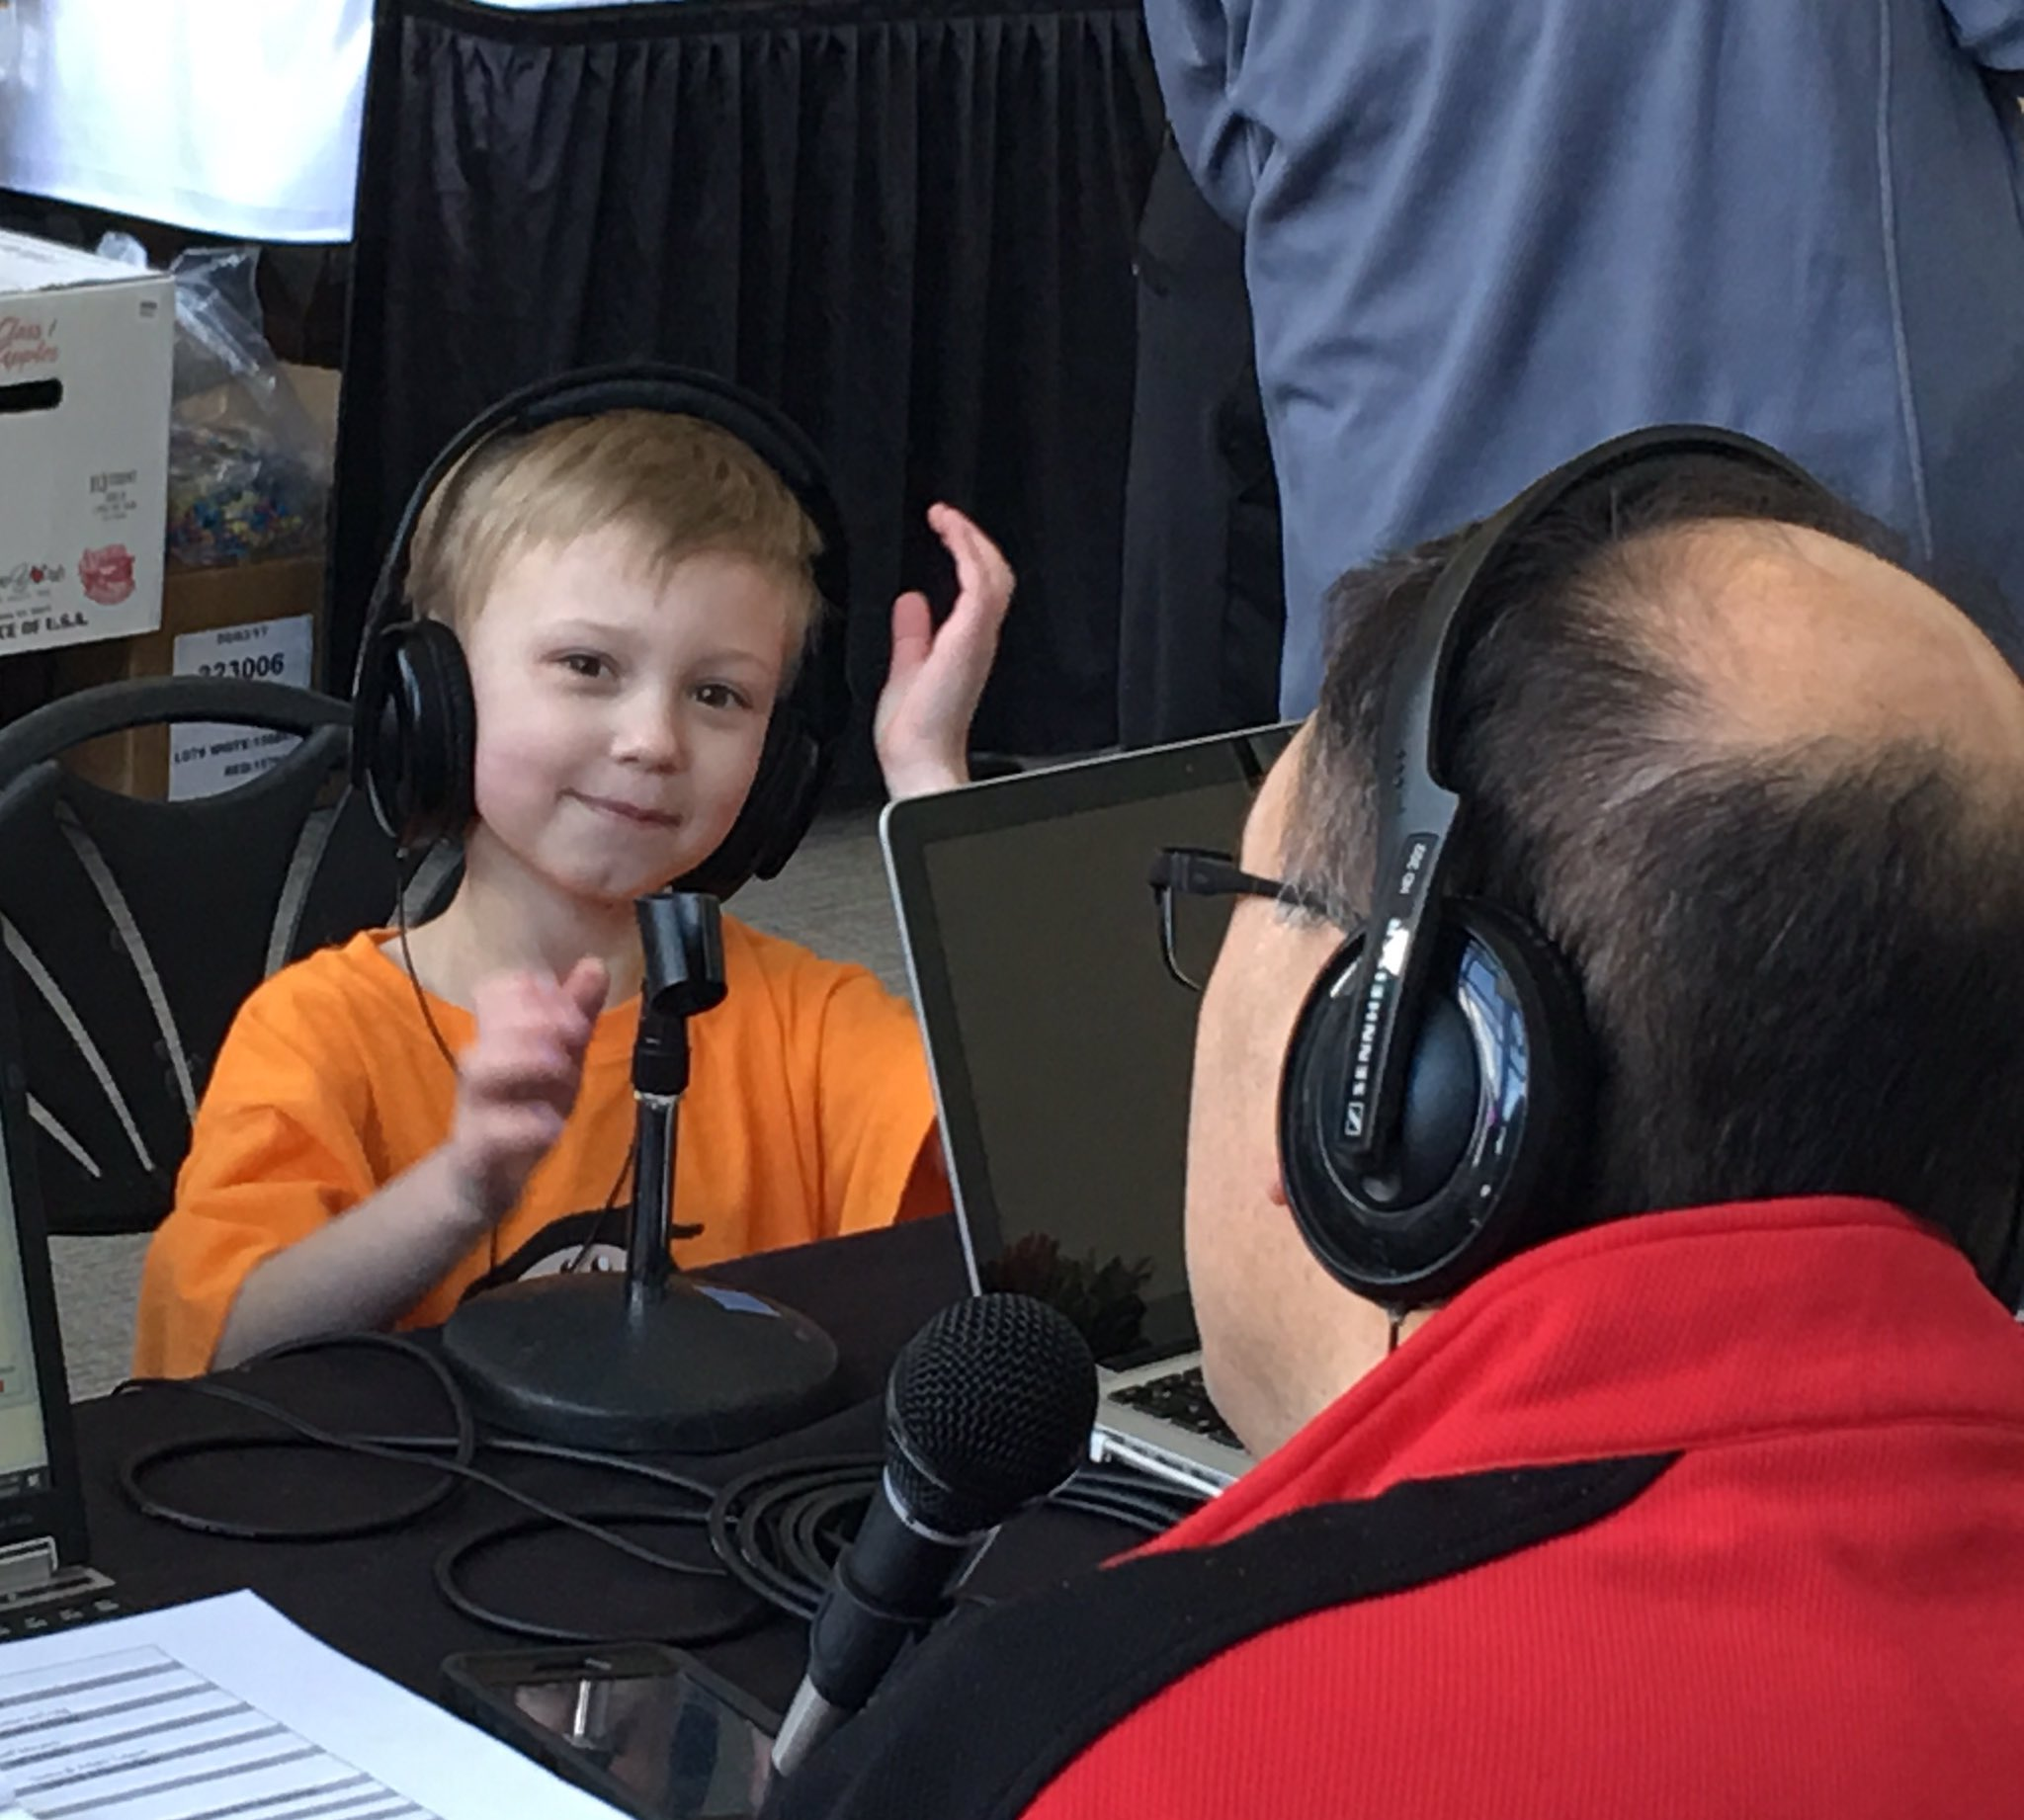 Miracle Kid Craig Winter and his mom, Kim, are sharing their story NOW on @1005THEDRIVE. #DriveForMiracles https://t.co/RxJFMK9ydB